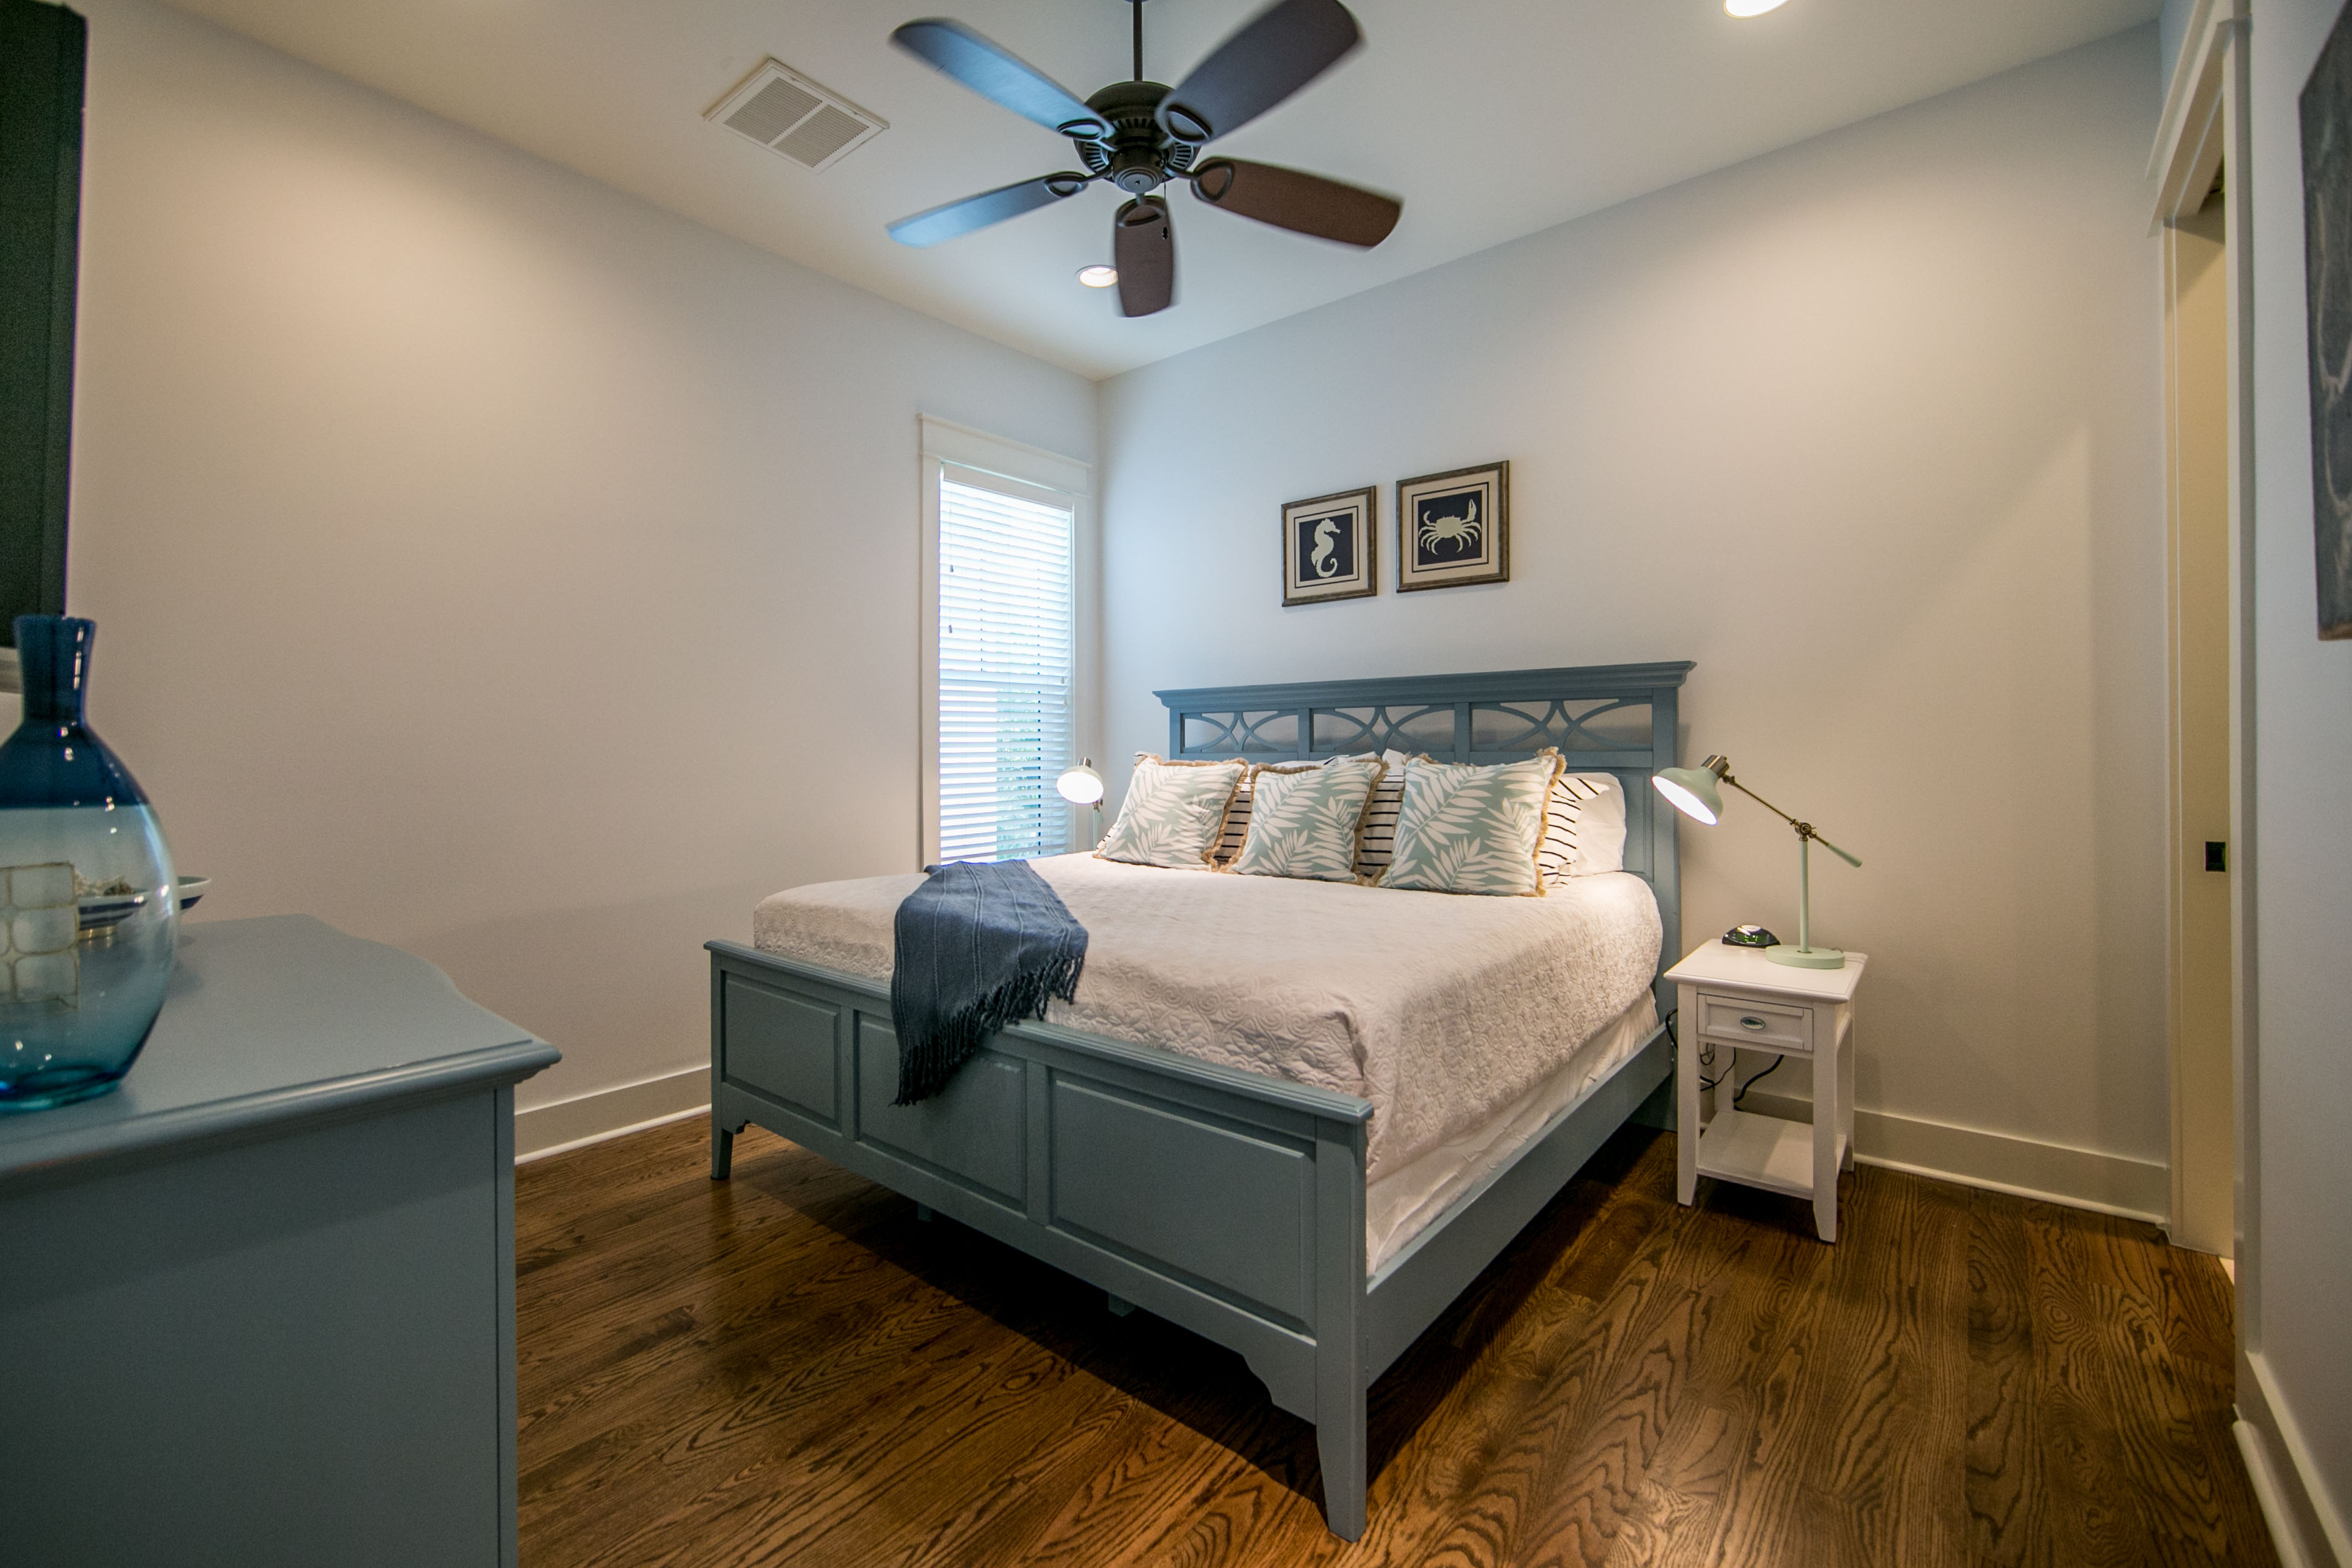 1st floor master bedroom en-suite with king bed and walk in closet